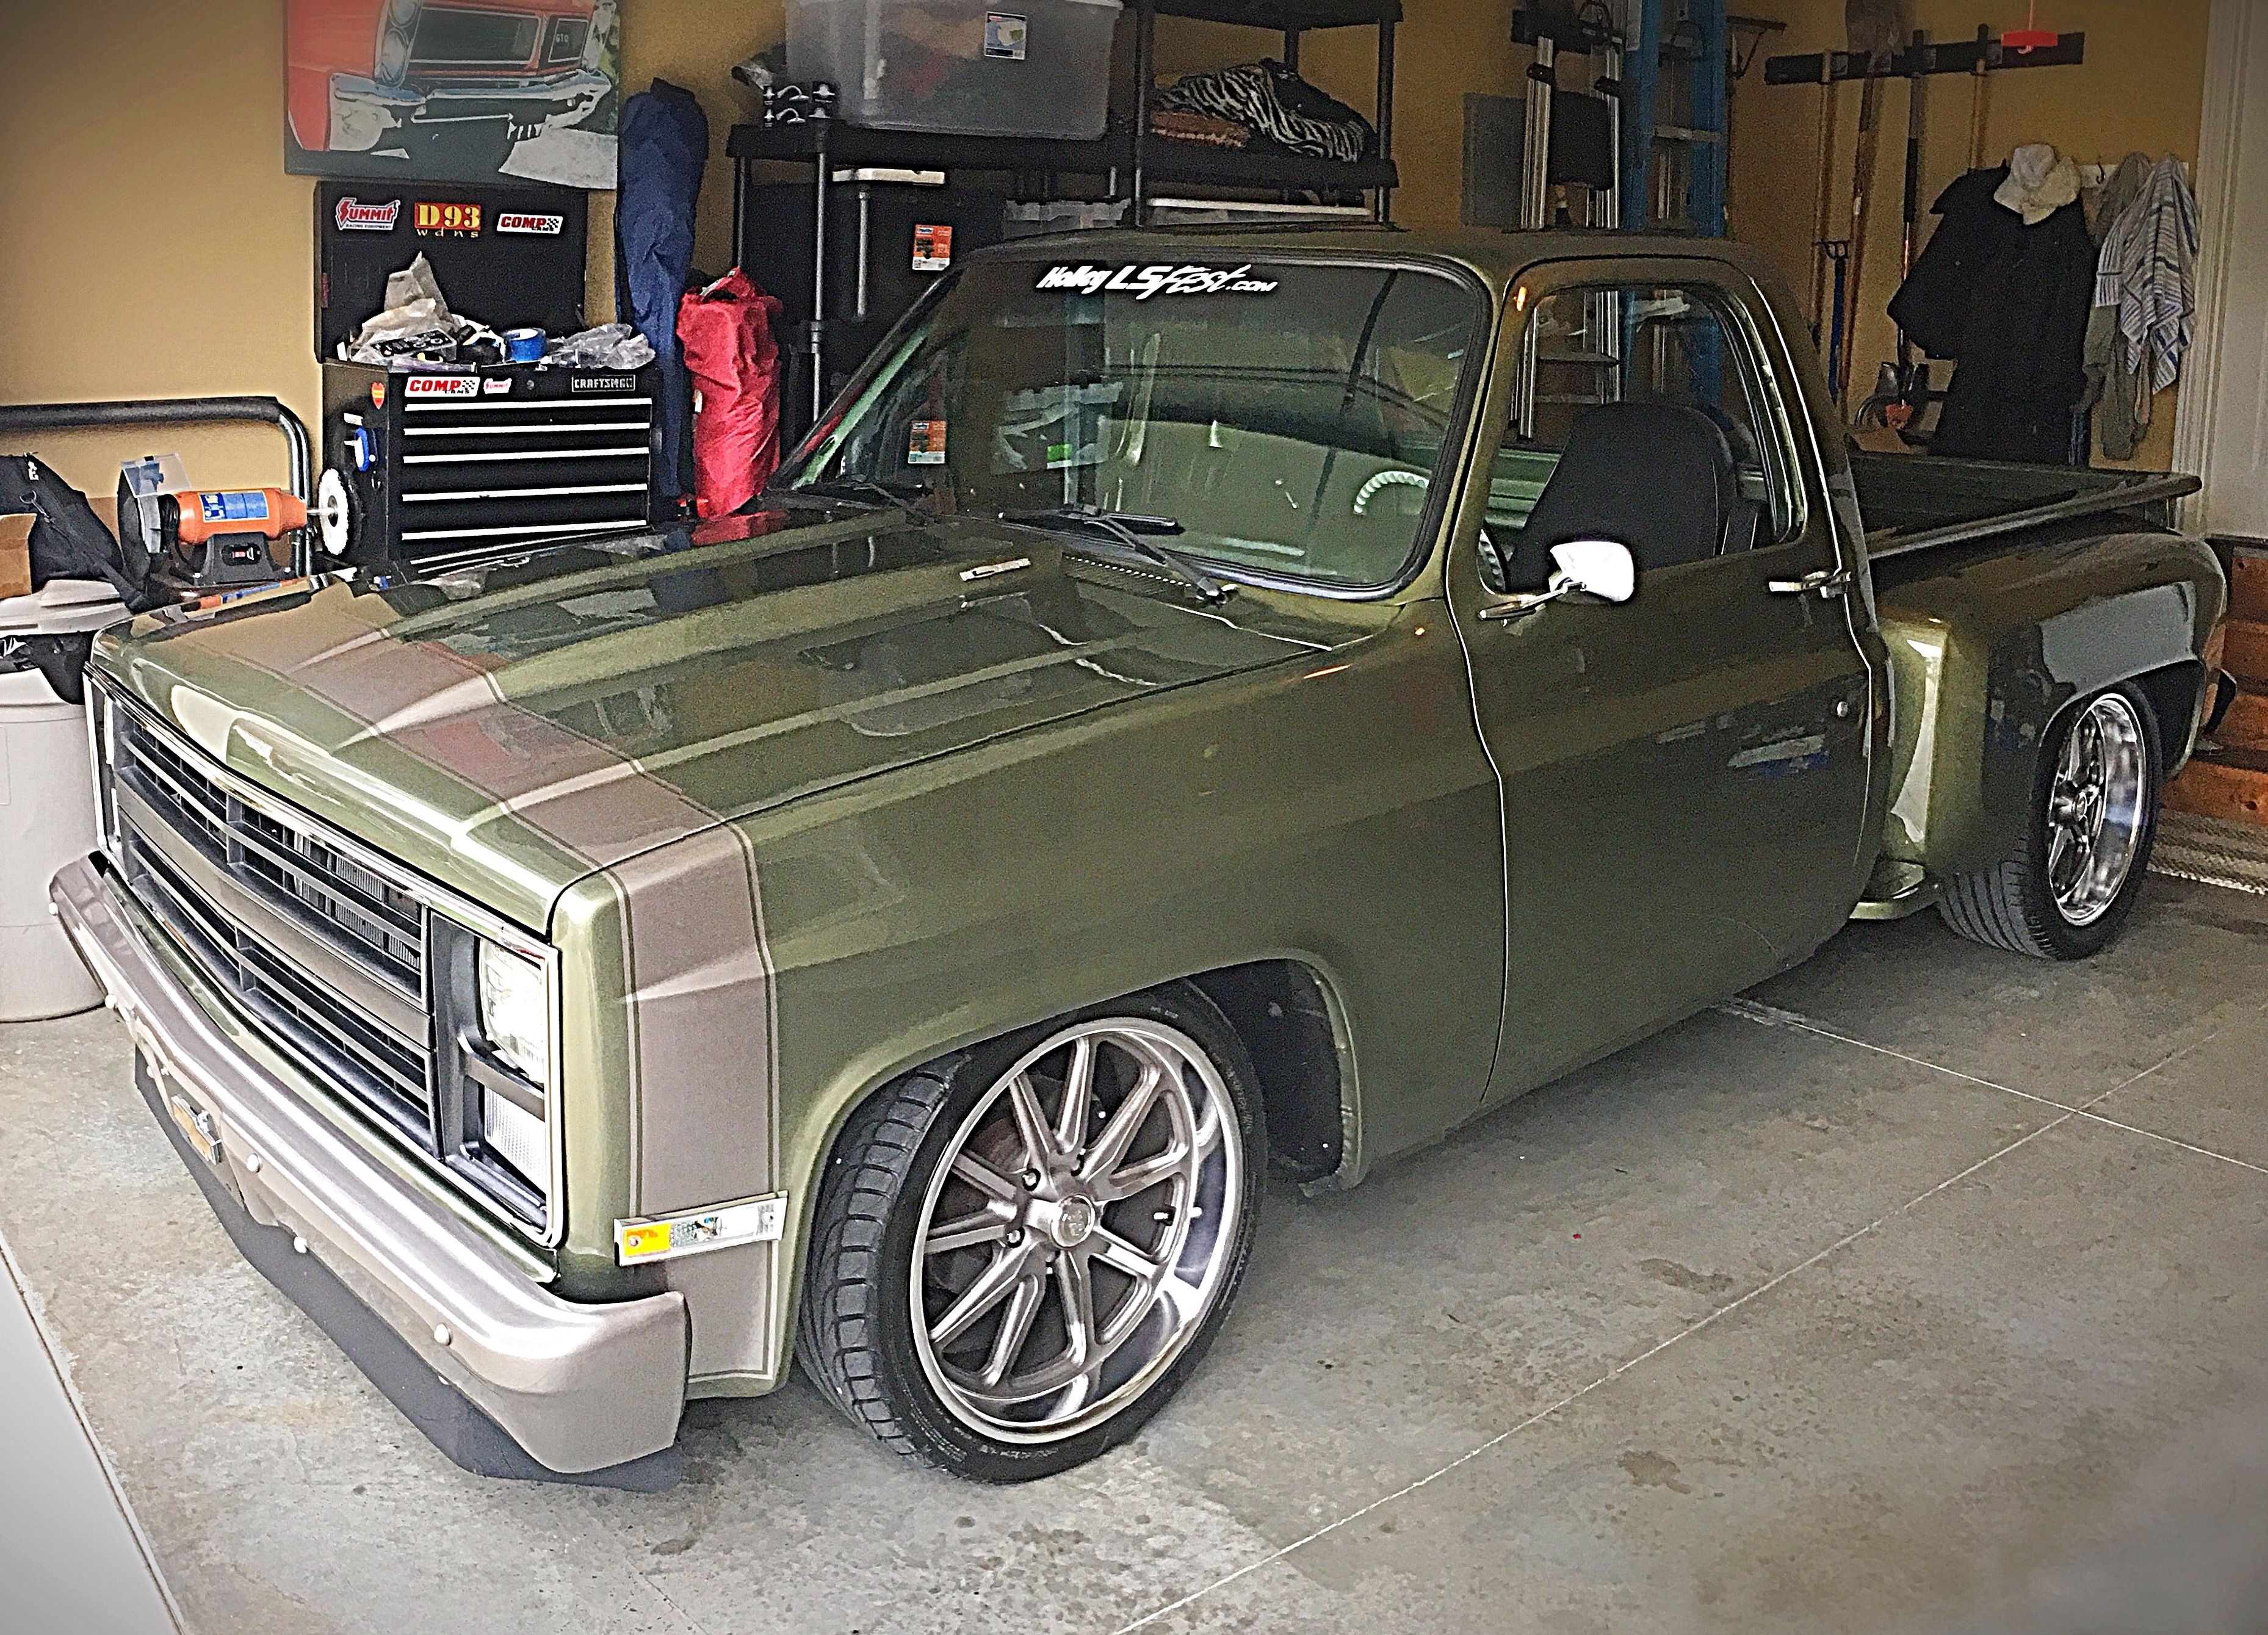 87 chevy r10 silverado see more share body step side c10